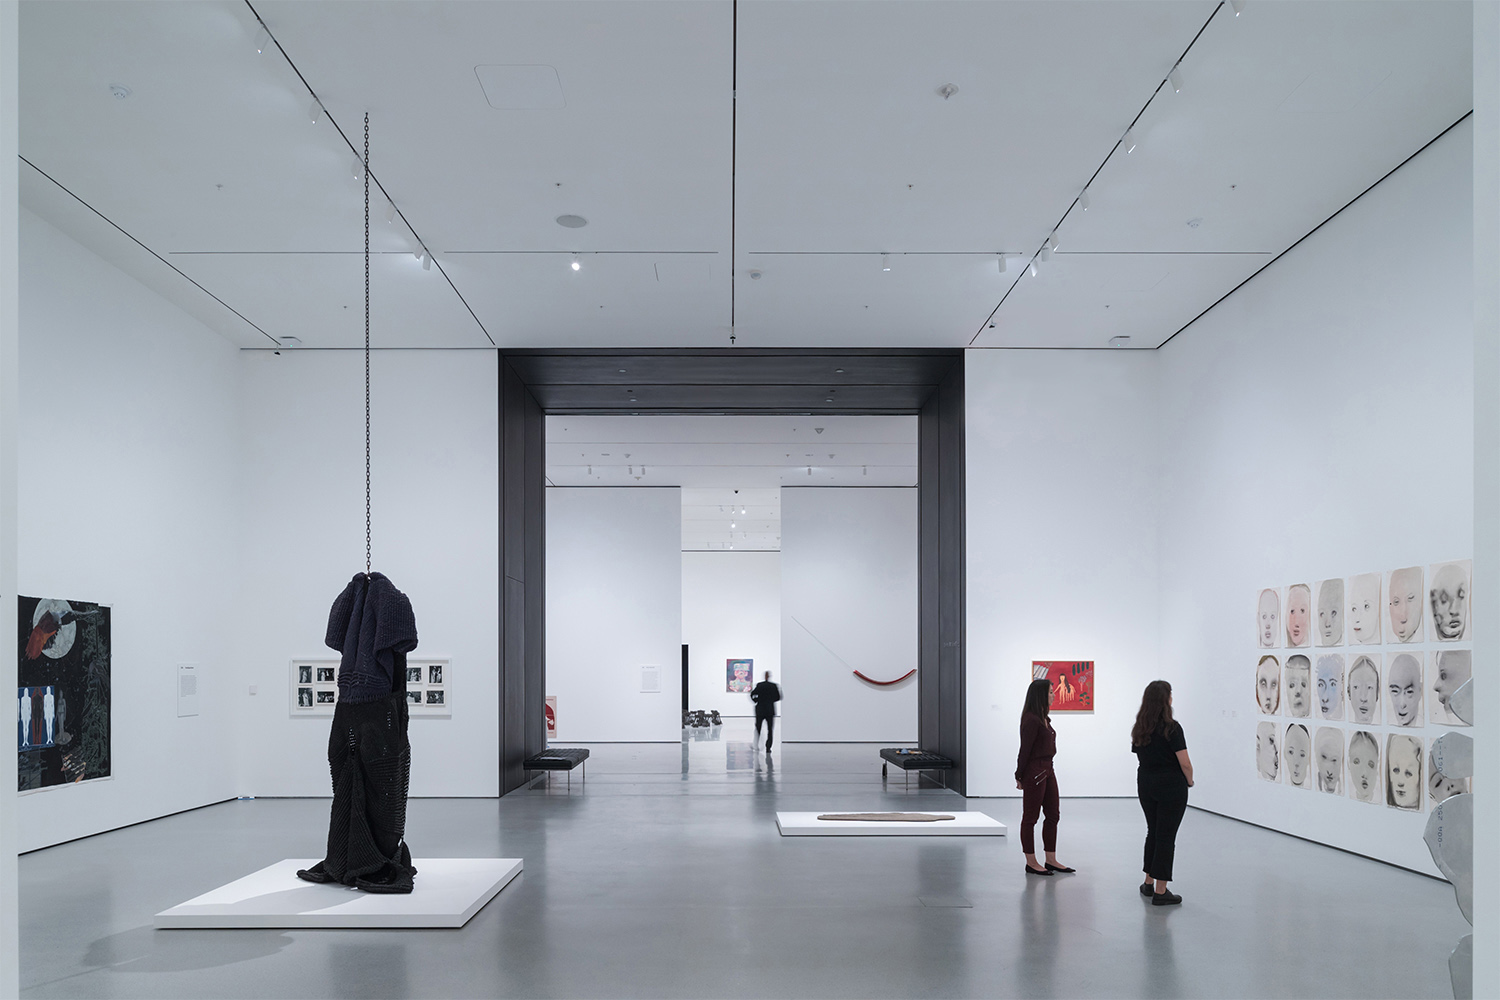 Installation View of David Geffen Wing gallery 206, Transfigurations, The Museum of Modern Art With view of Blackened Steel Portal Photography by Iwan Baan